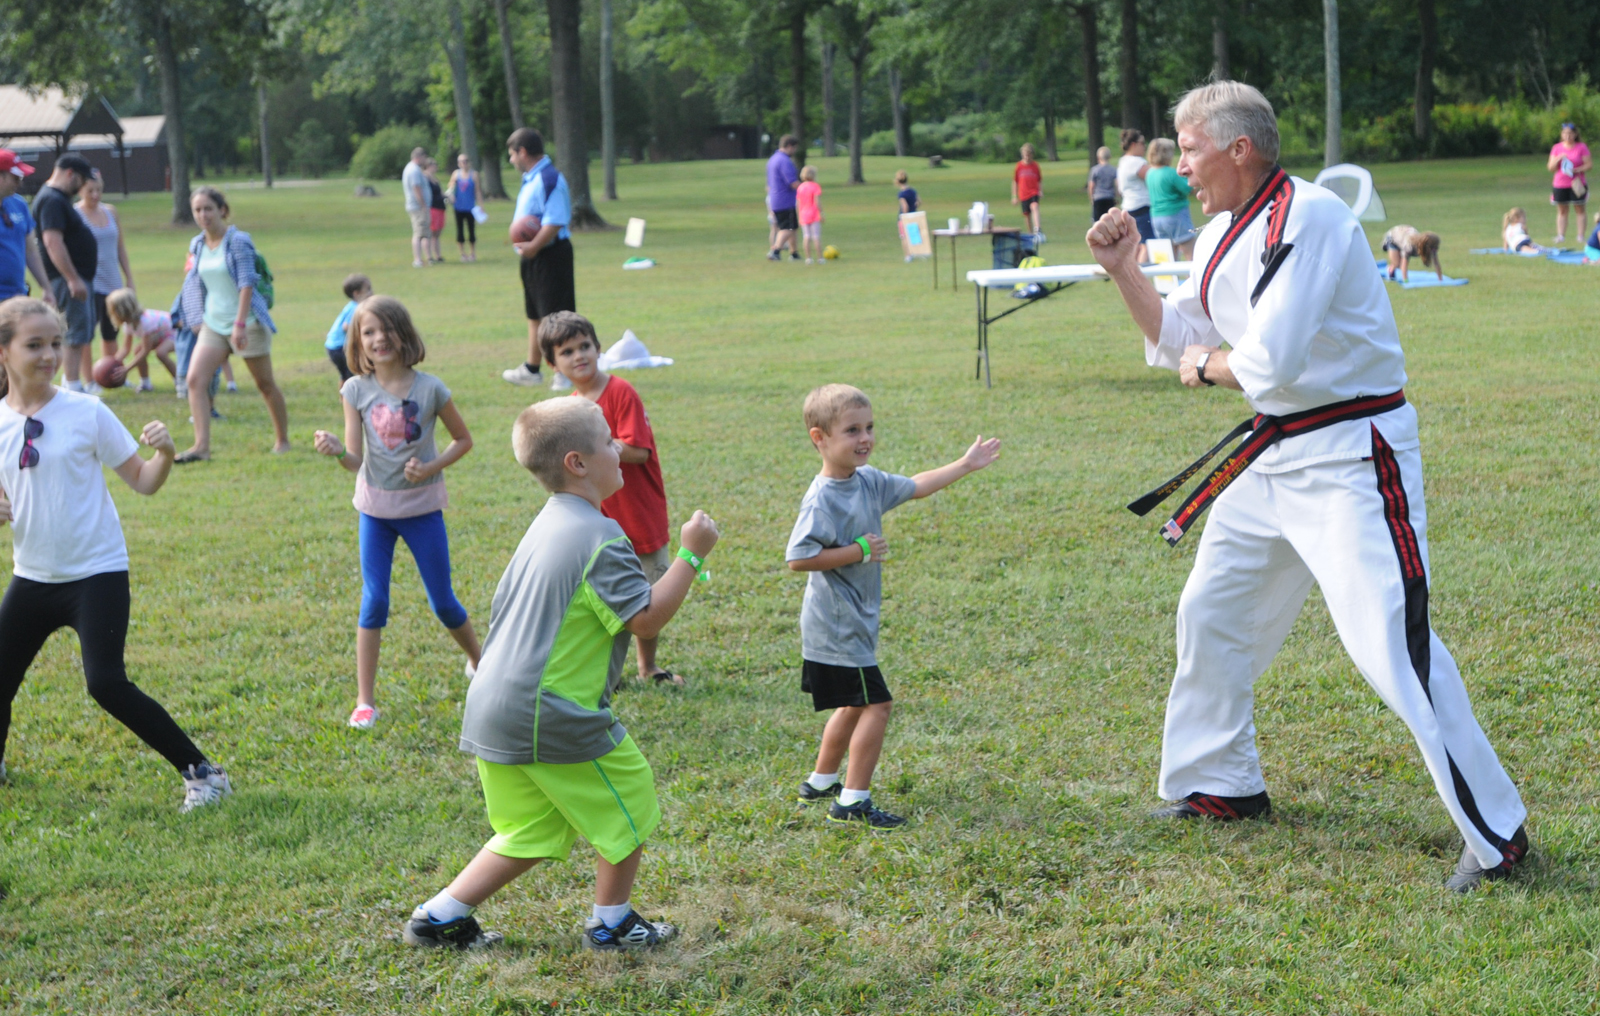 photos community has a field day at hickory park in new hanover